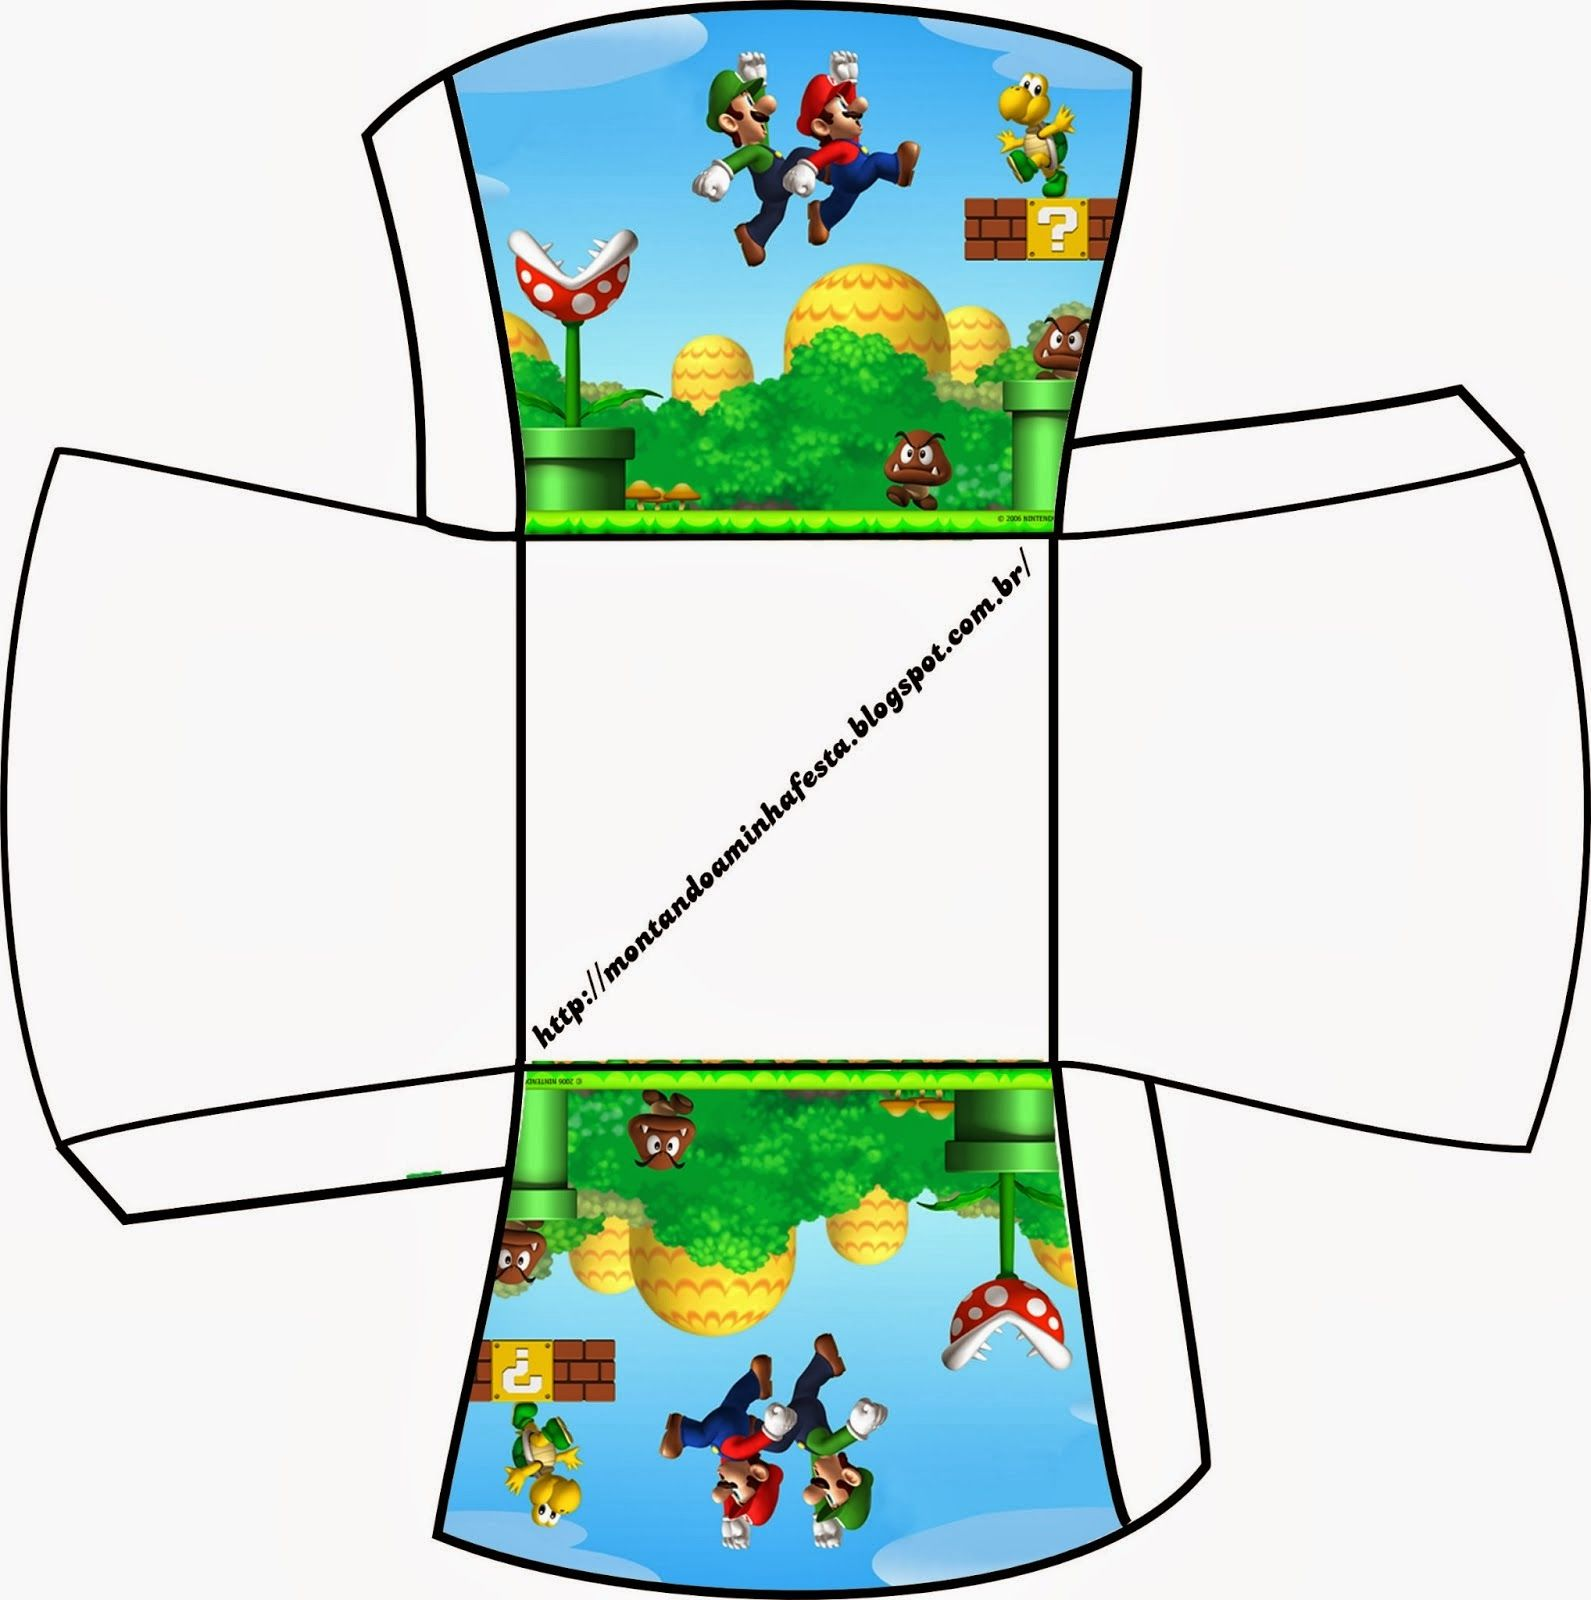 Pin by Lavinia Dejа on Svvet | Pinterest | Mario bros and Party games